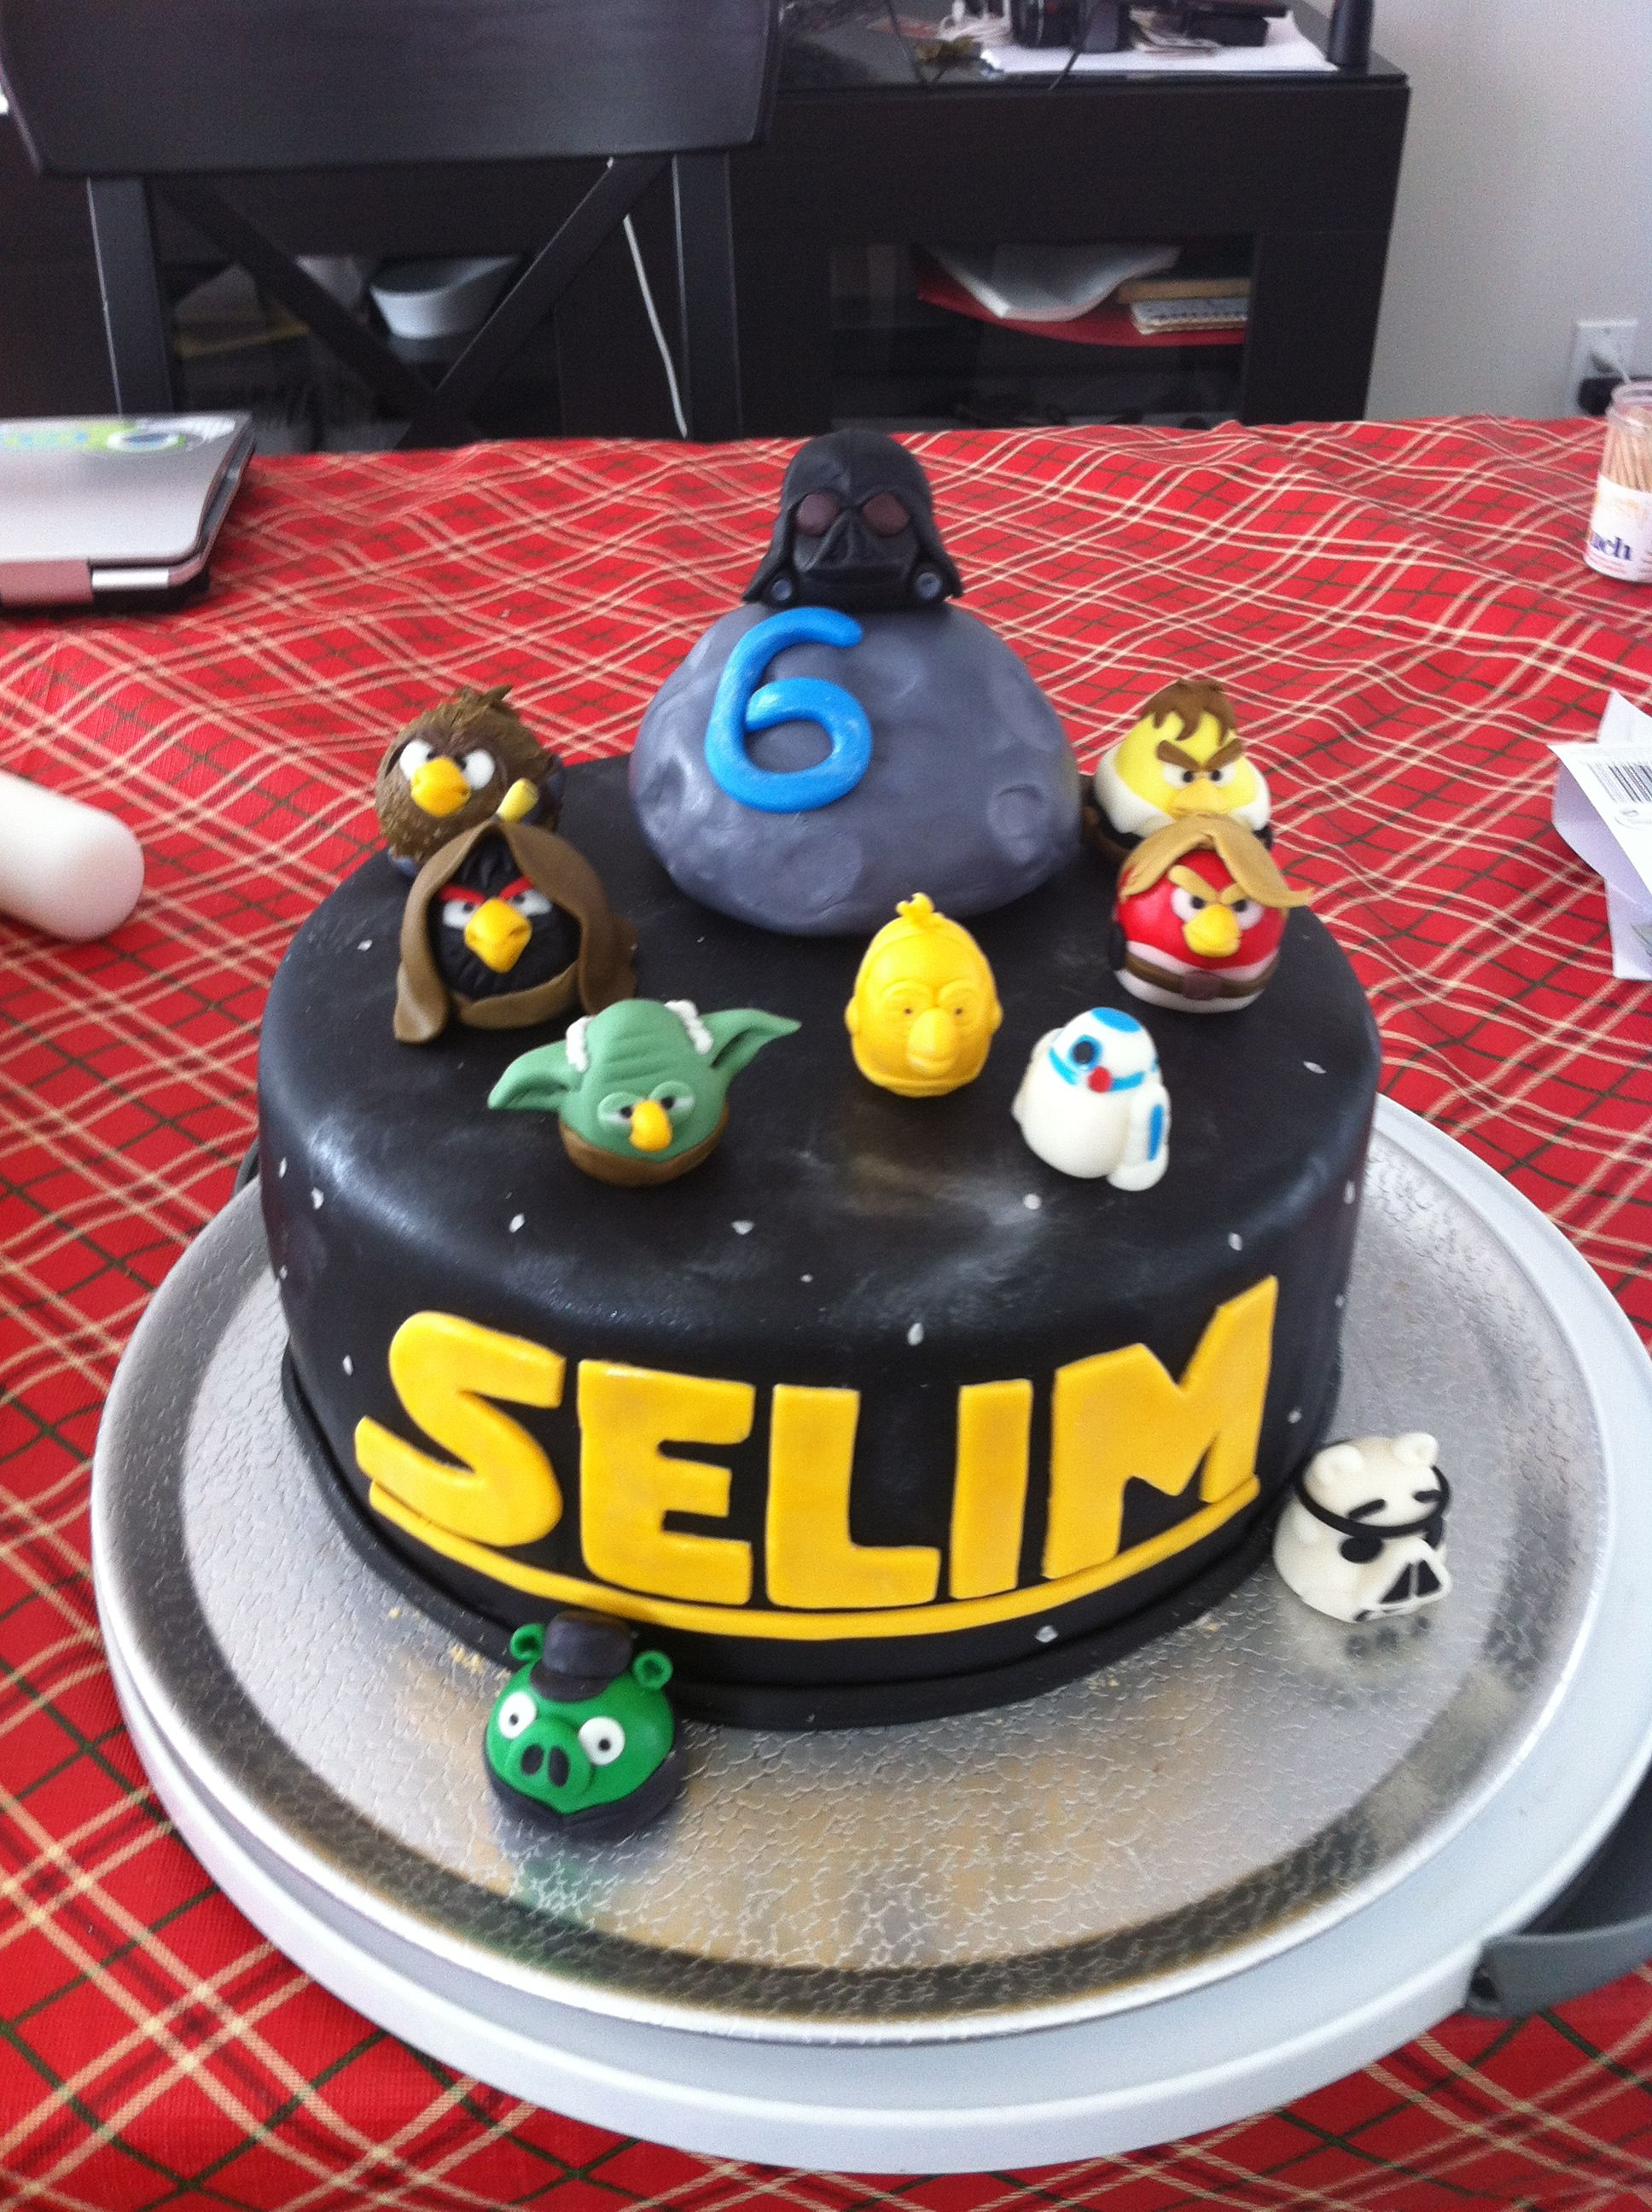 Angry Birds Star Wars Cake I Made For My Son S 6th